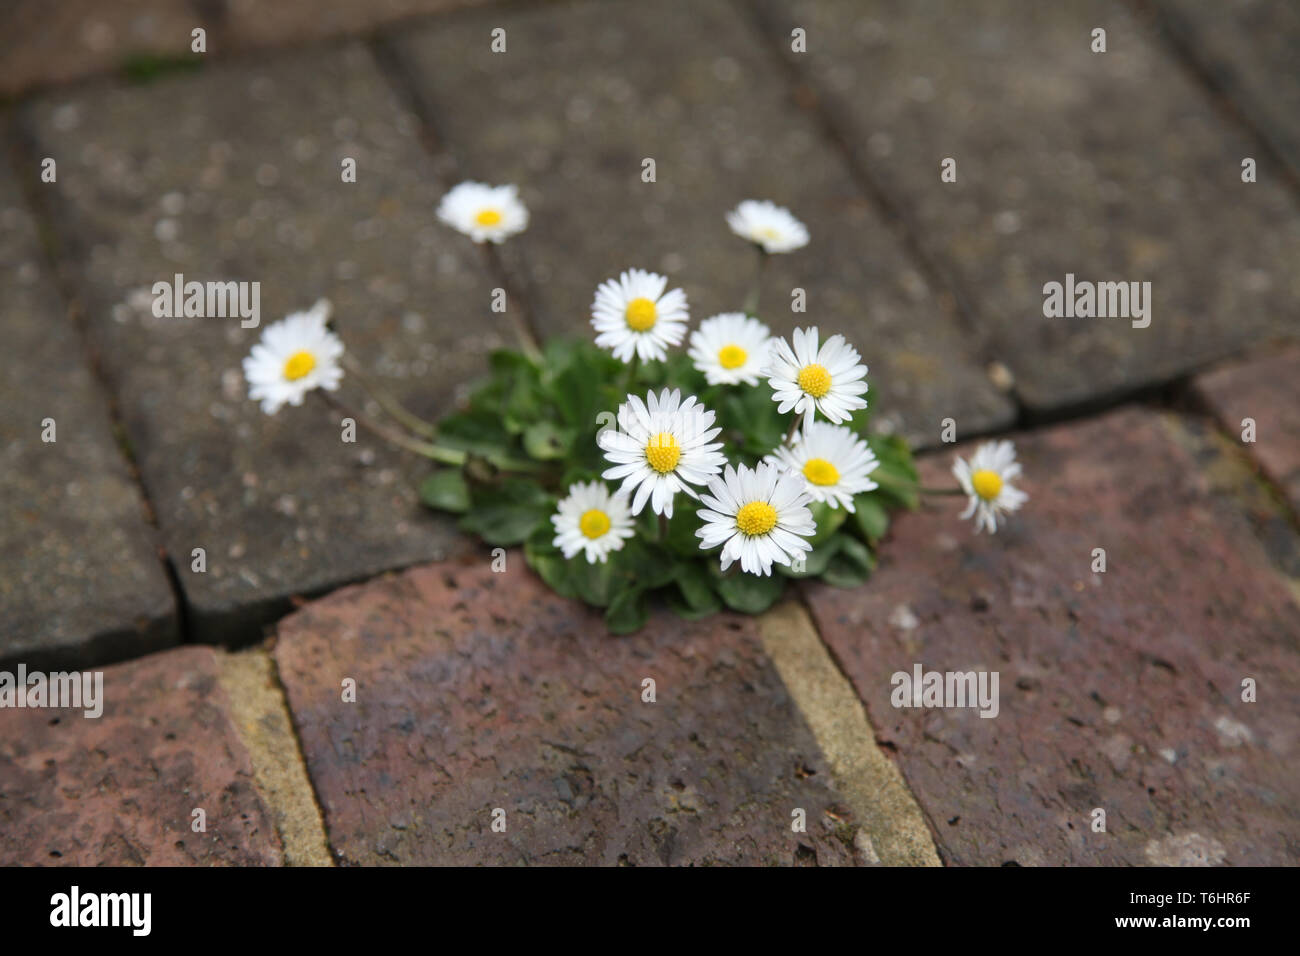 Group of Daisies isolated on a block paving patio - Stock Image